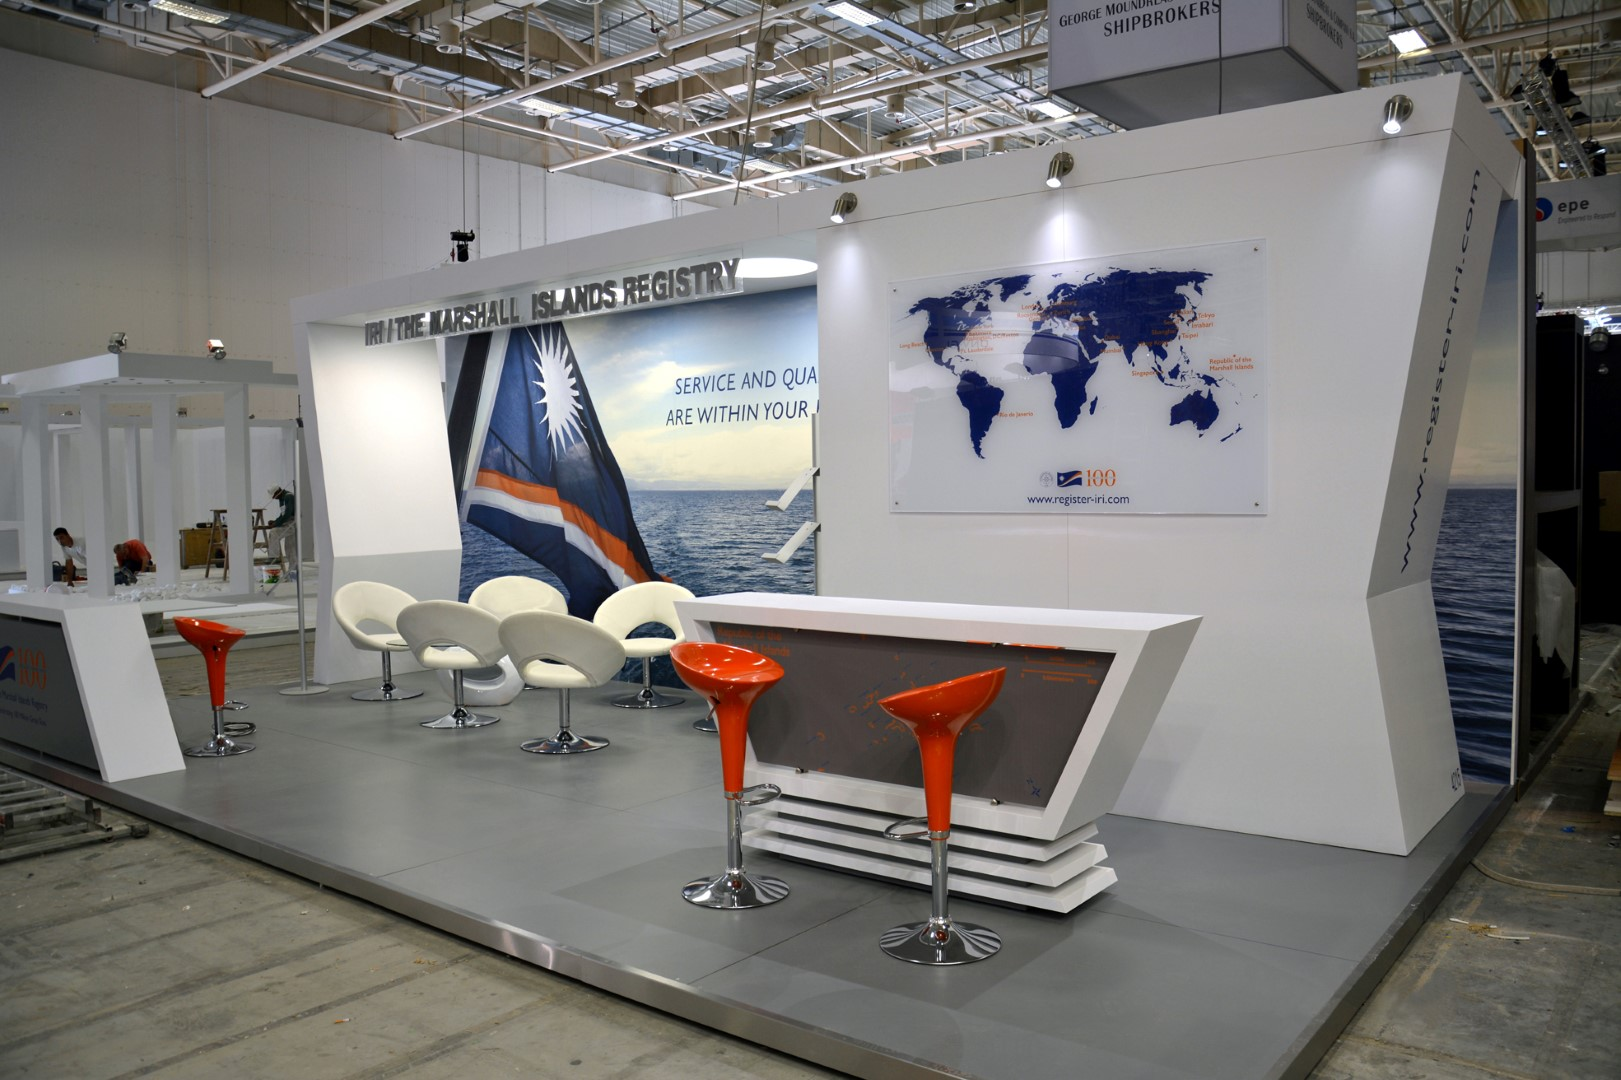 Exhibition Booth Private Maritime Services Company at Metropolitan Expo